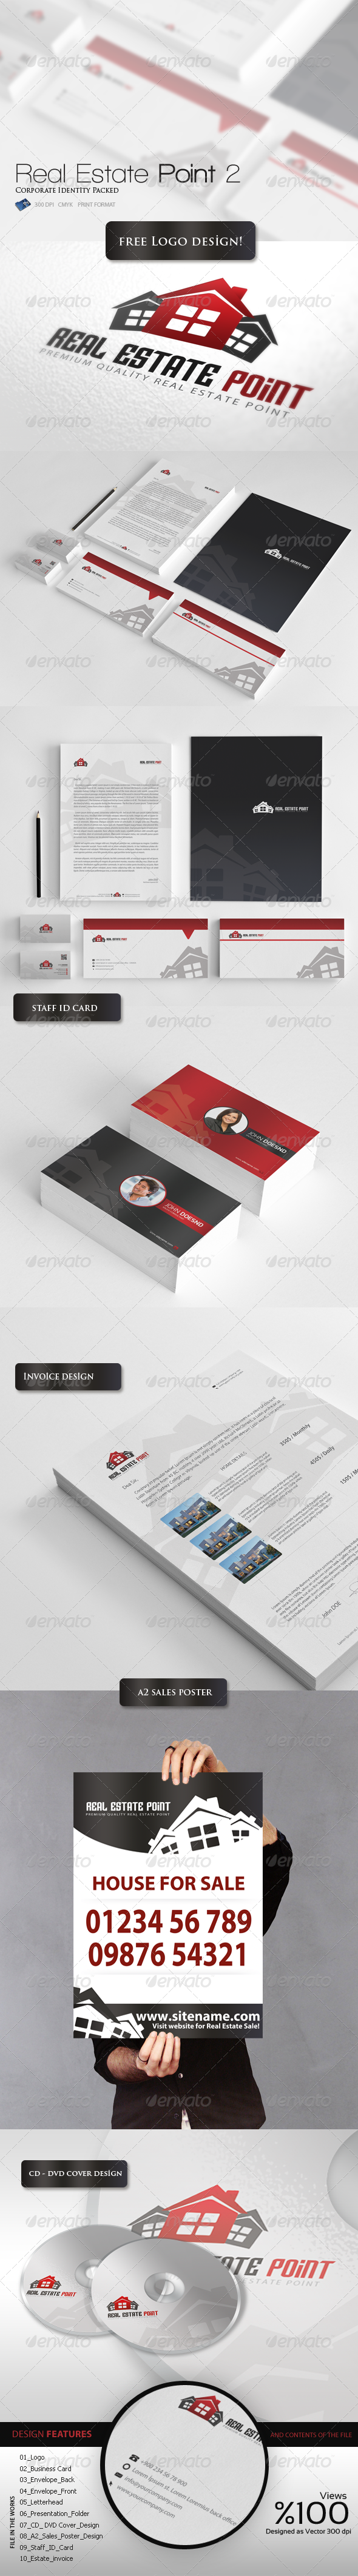 Real Estate Point - Corporate Identity Packed 7 - Stationery Print Templates